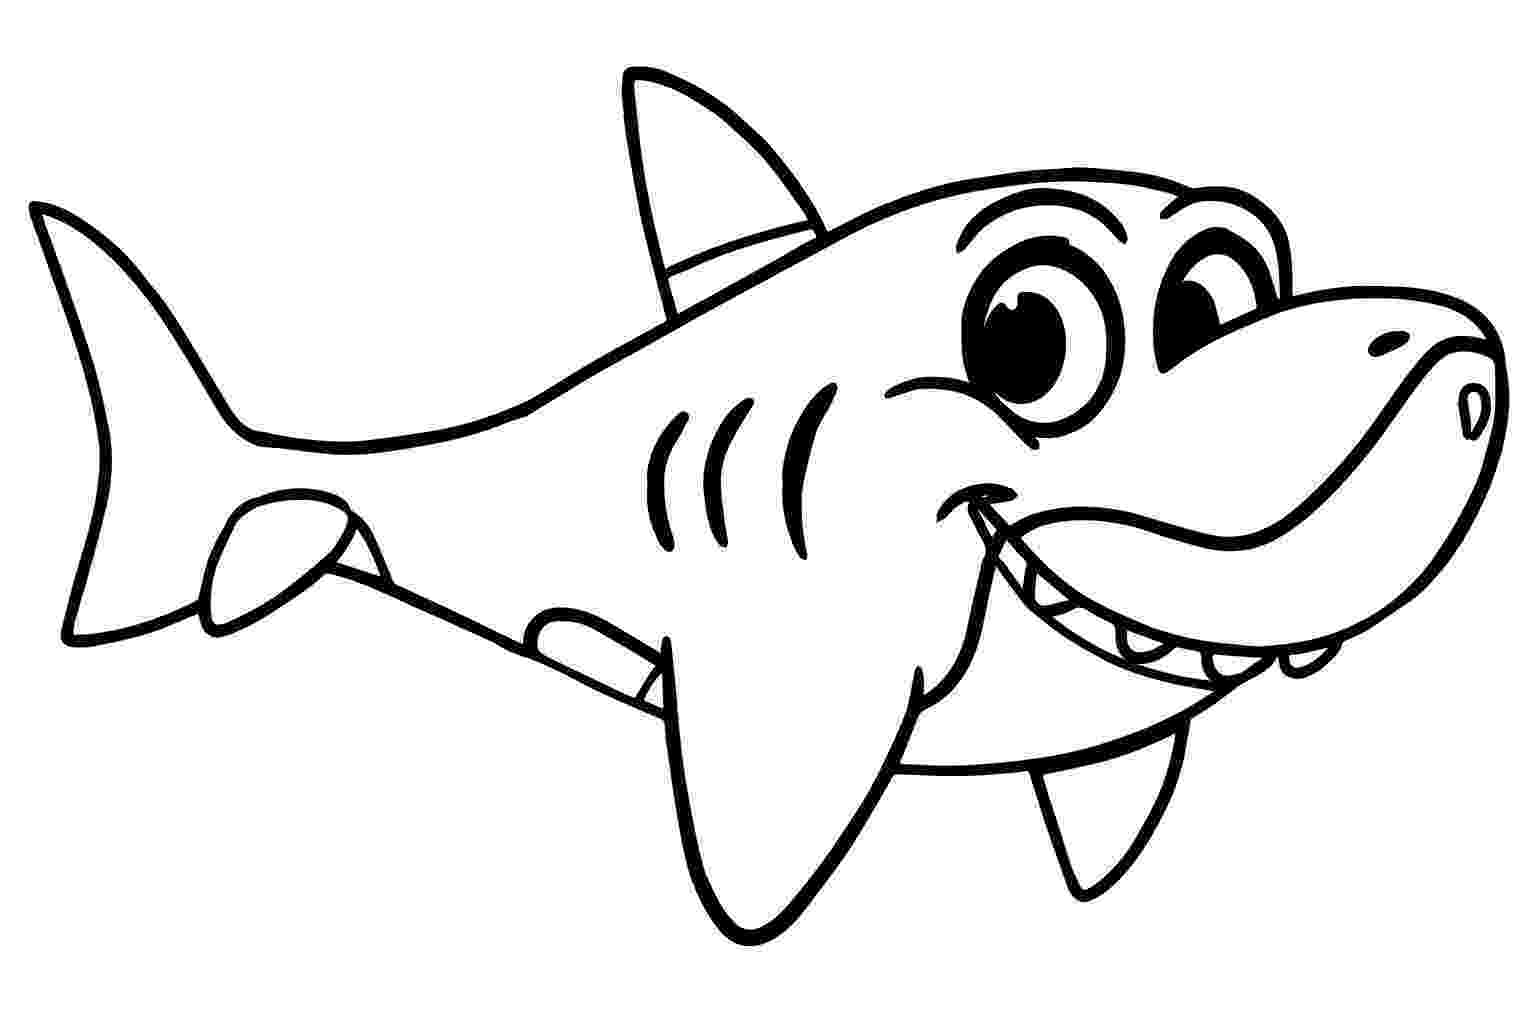 sharks to color sharks to color for children sharks kids coloring pages color to sharks